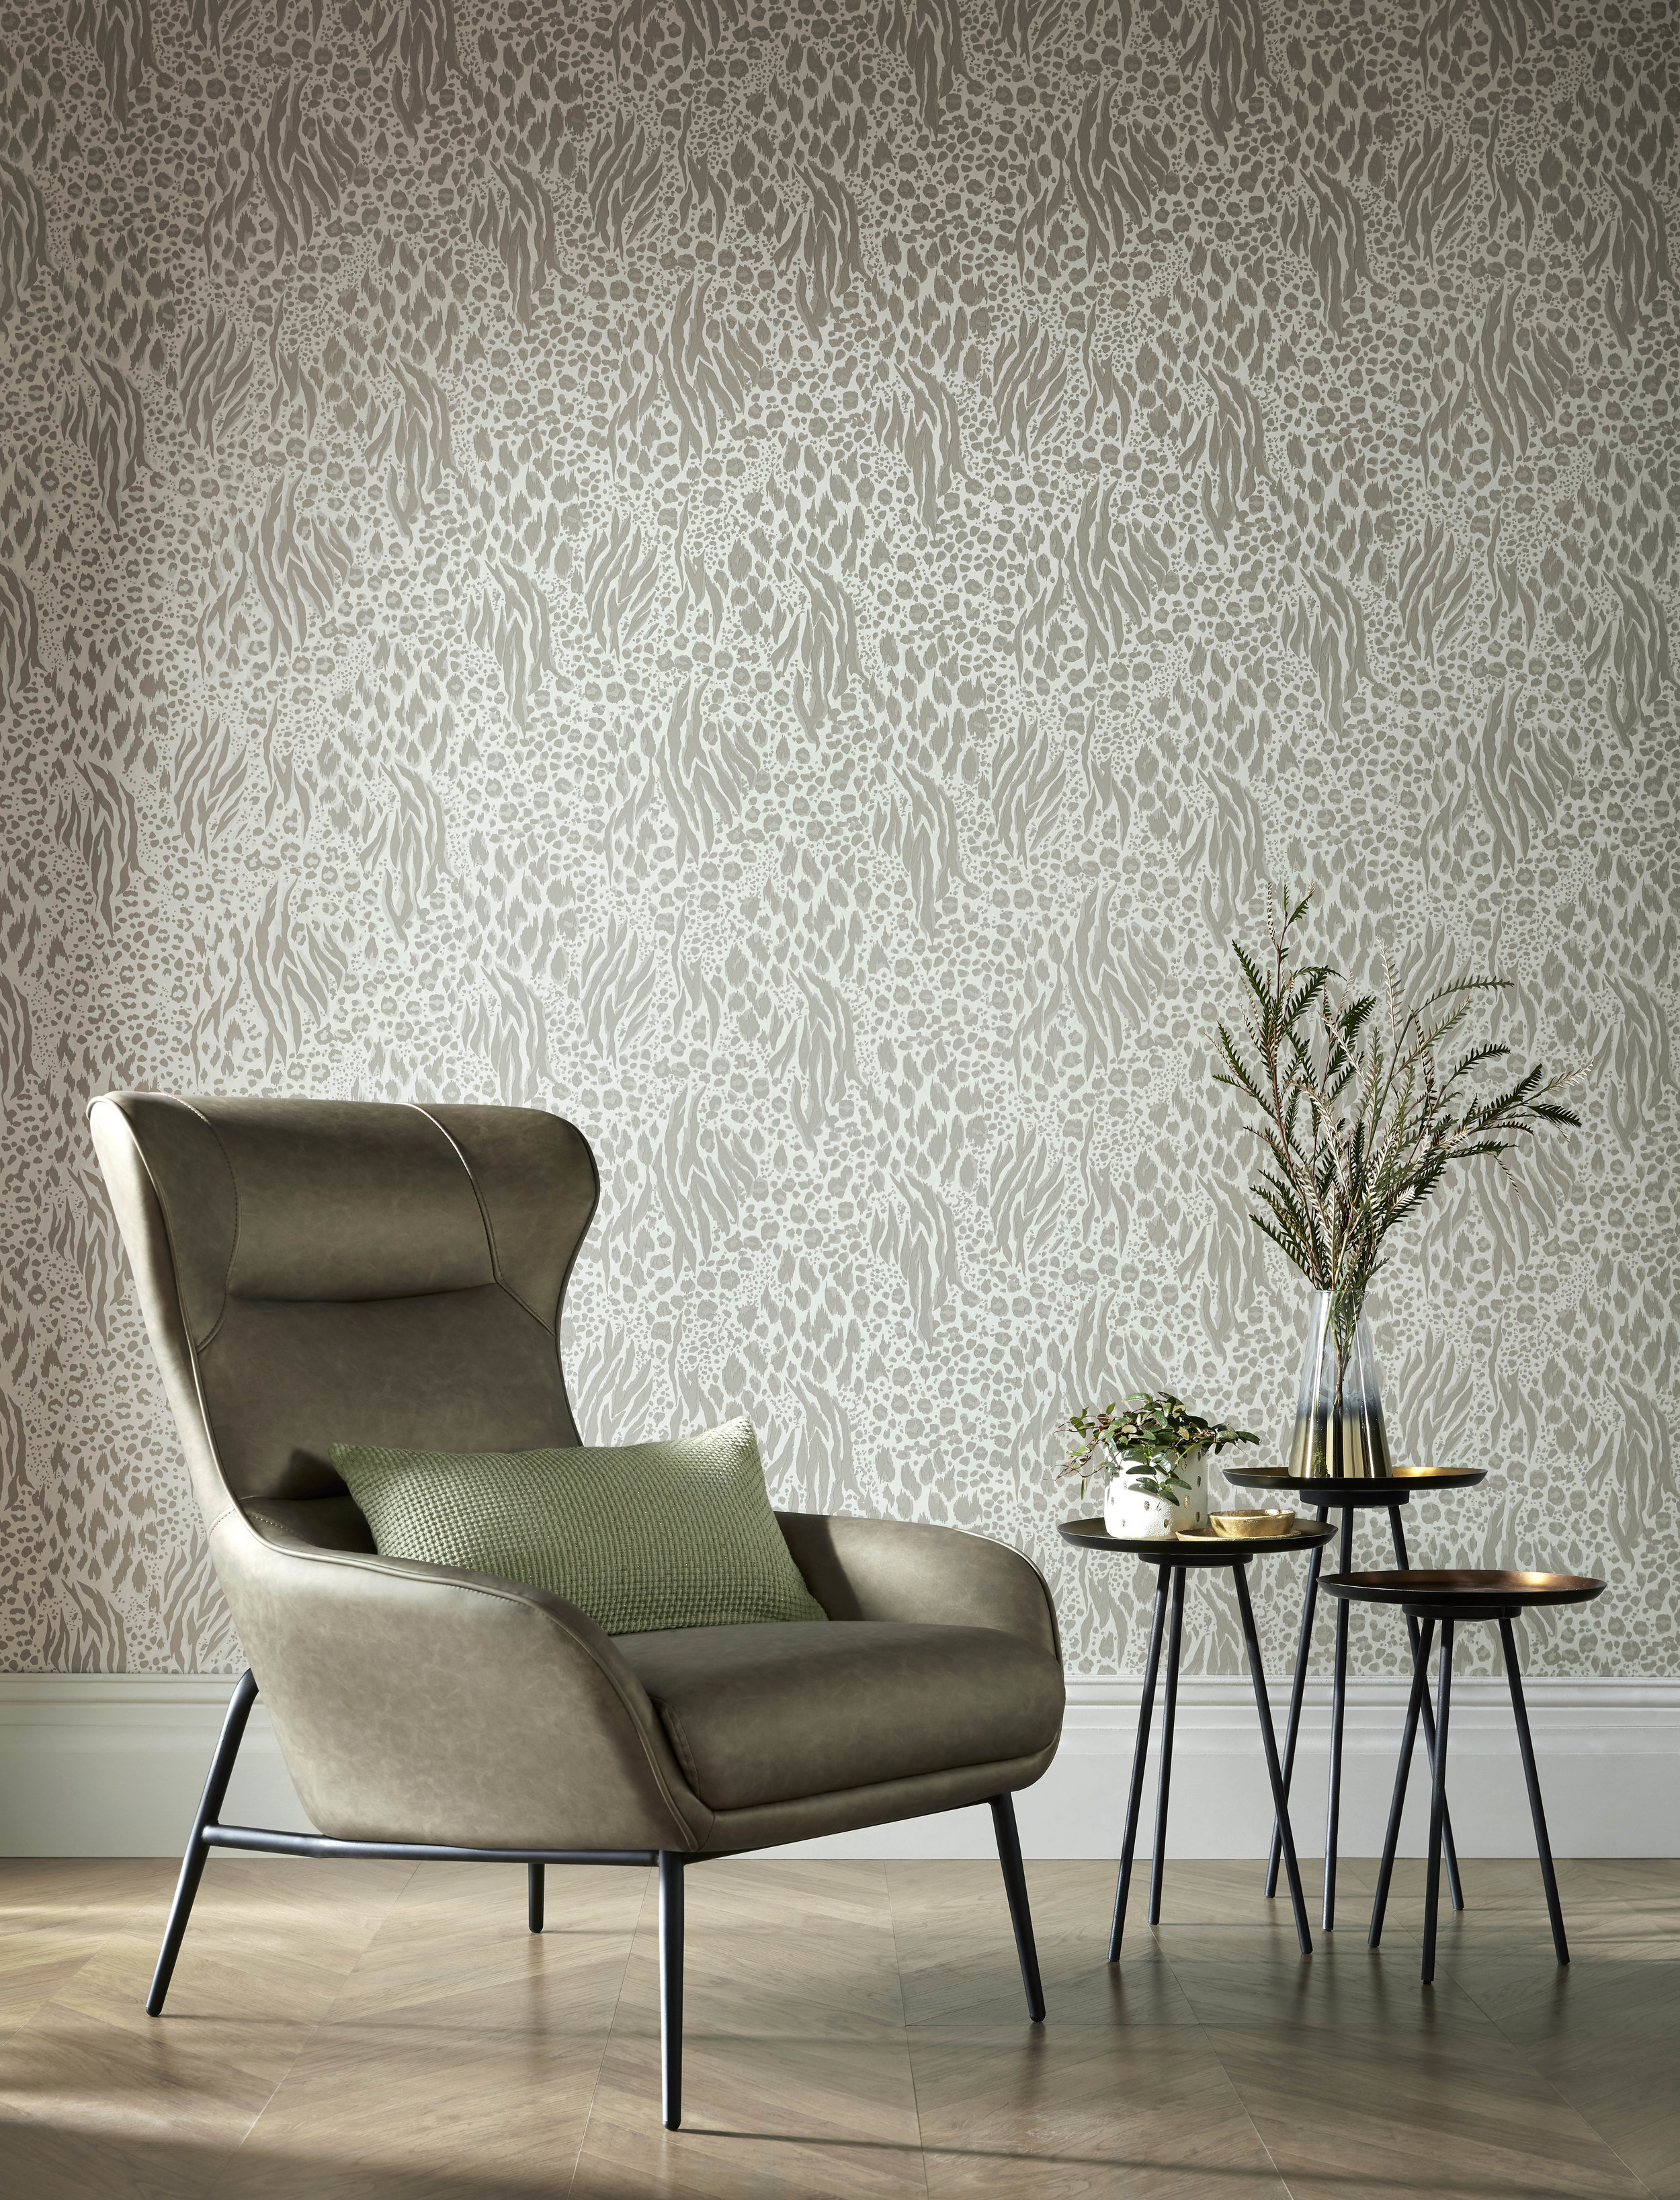 Accessorize Savannah Wallpaper - Neutral Glimmer copy.jpg